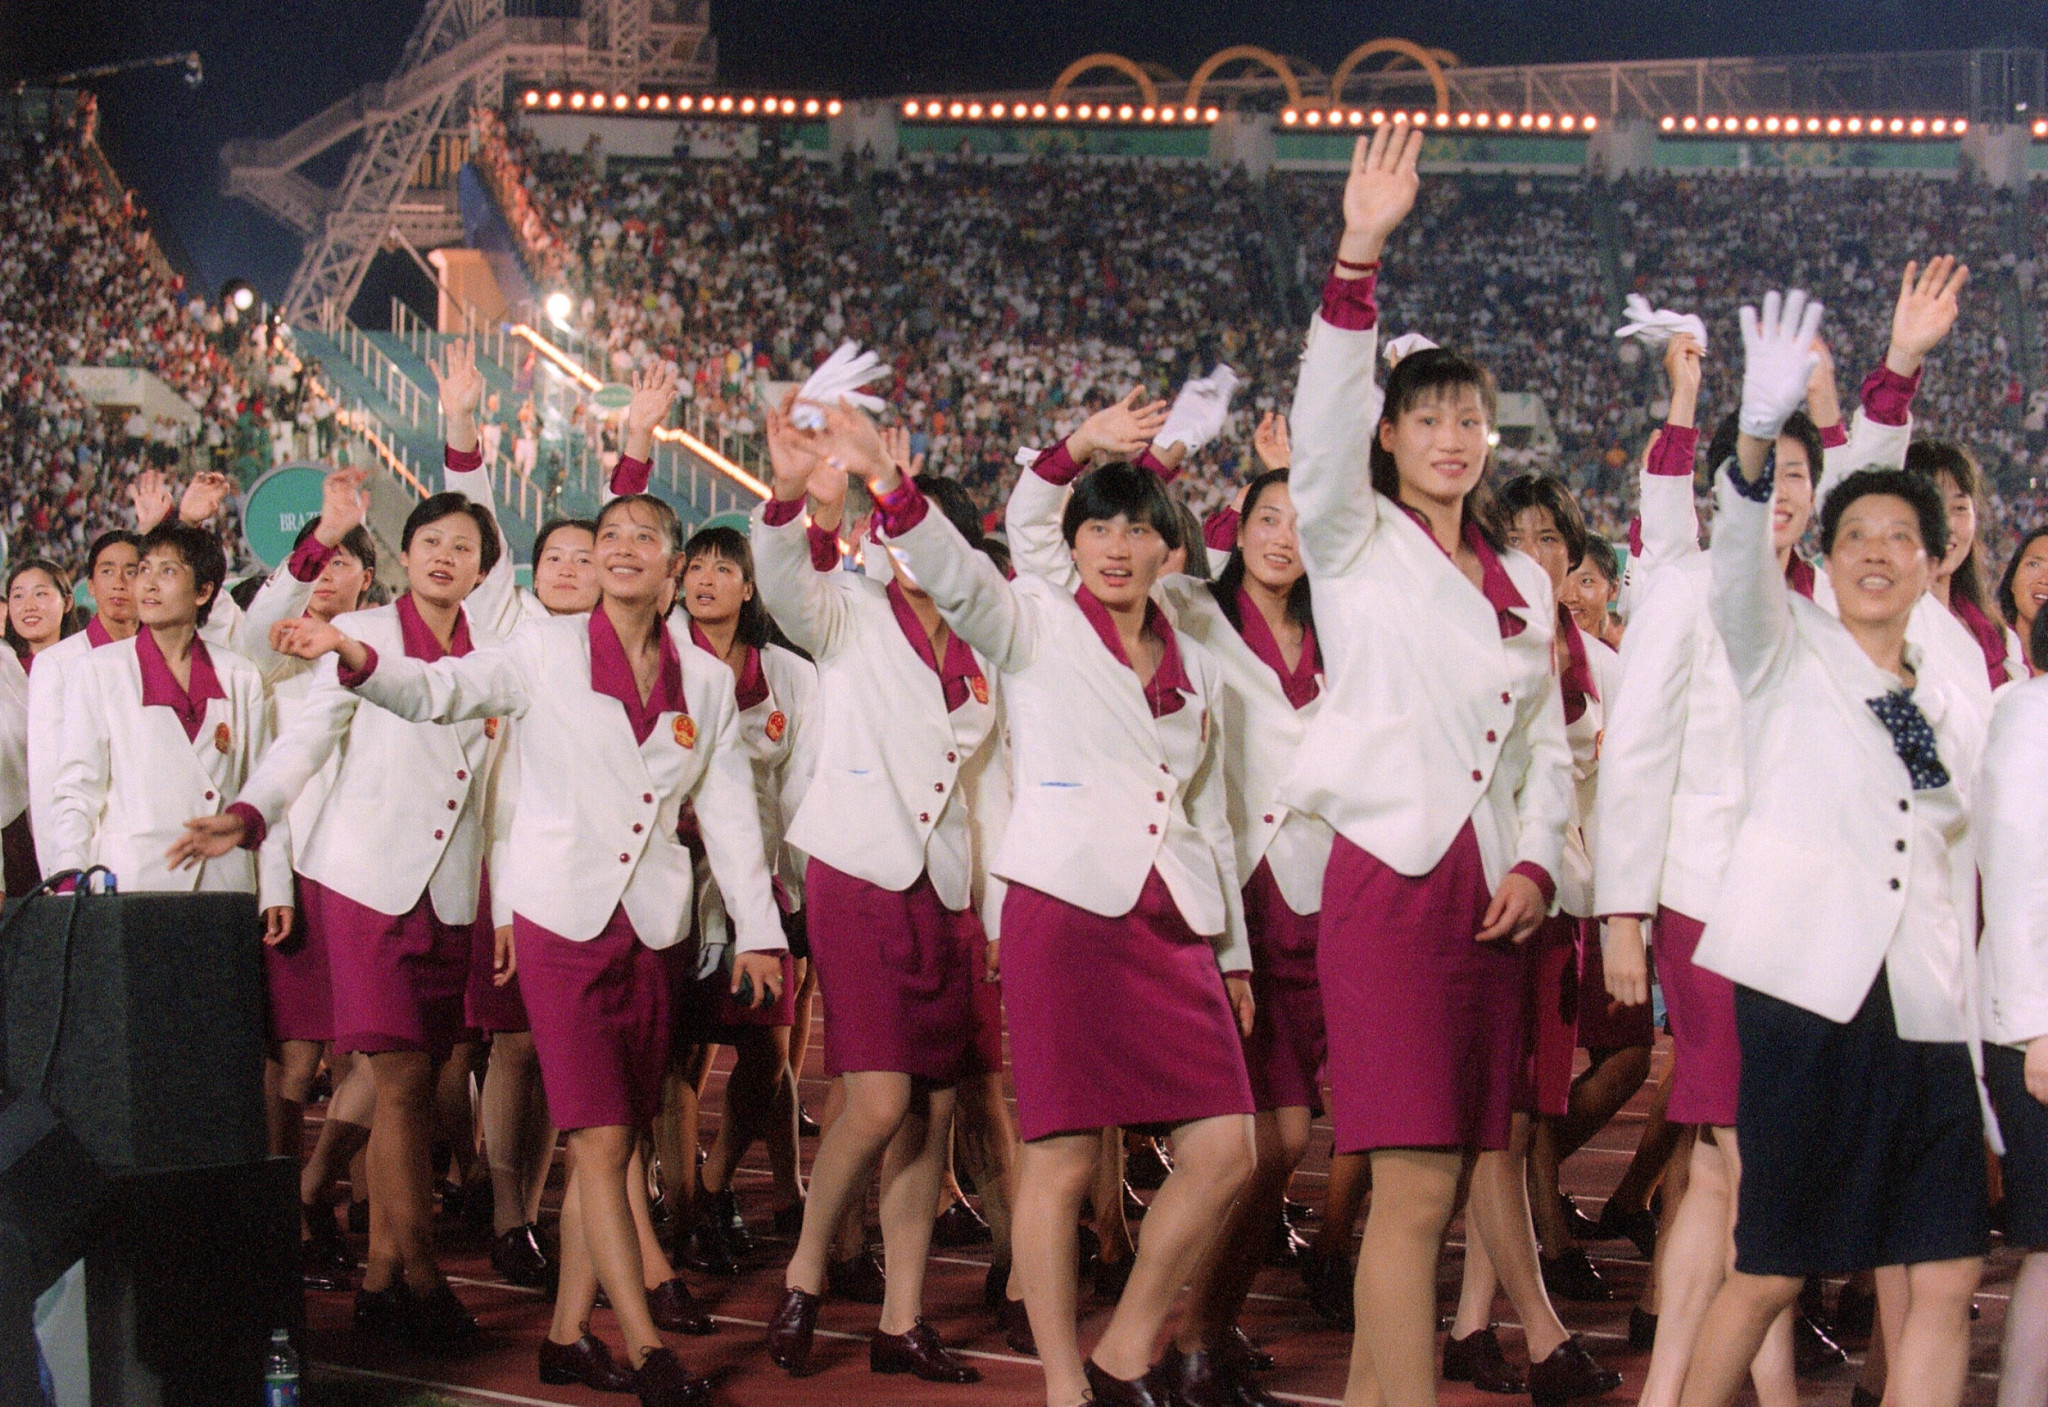 Members of the Chinese Olympic team parade at the Opening Ceremony of Atlanta 1996 ©Getty Images